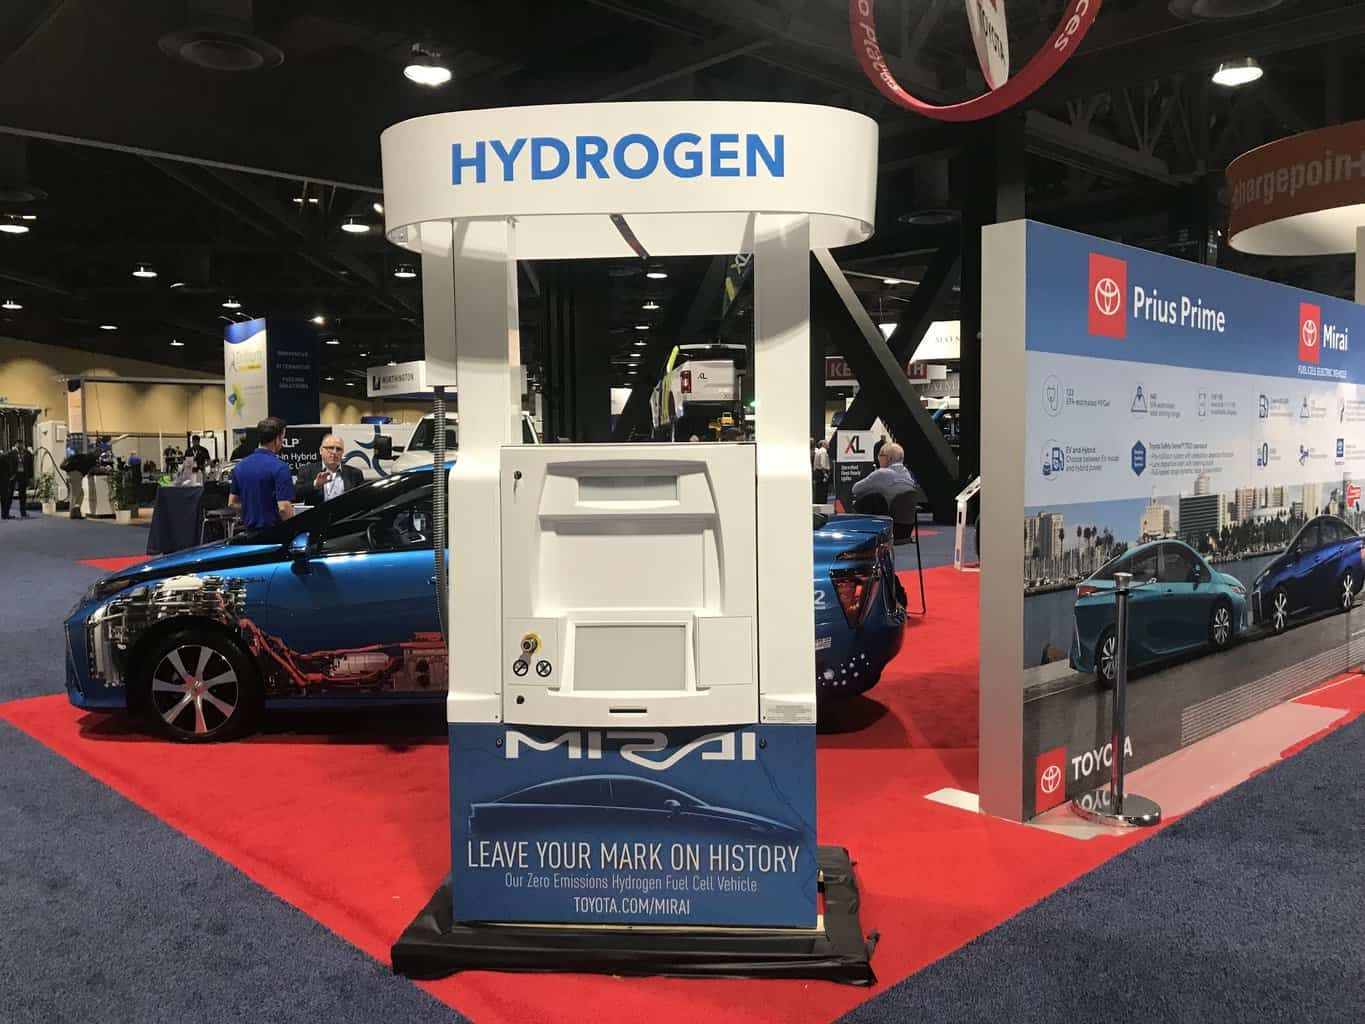 Hydrogen and electric forces are locked in a battle for the